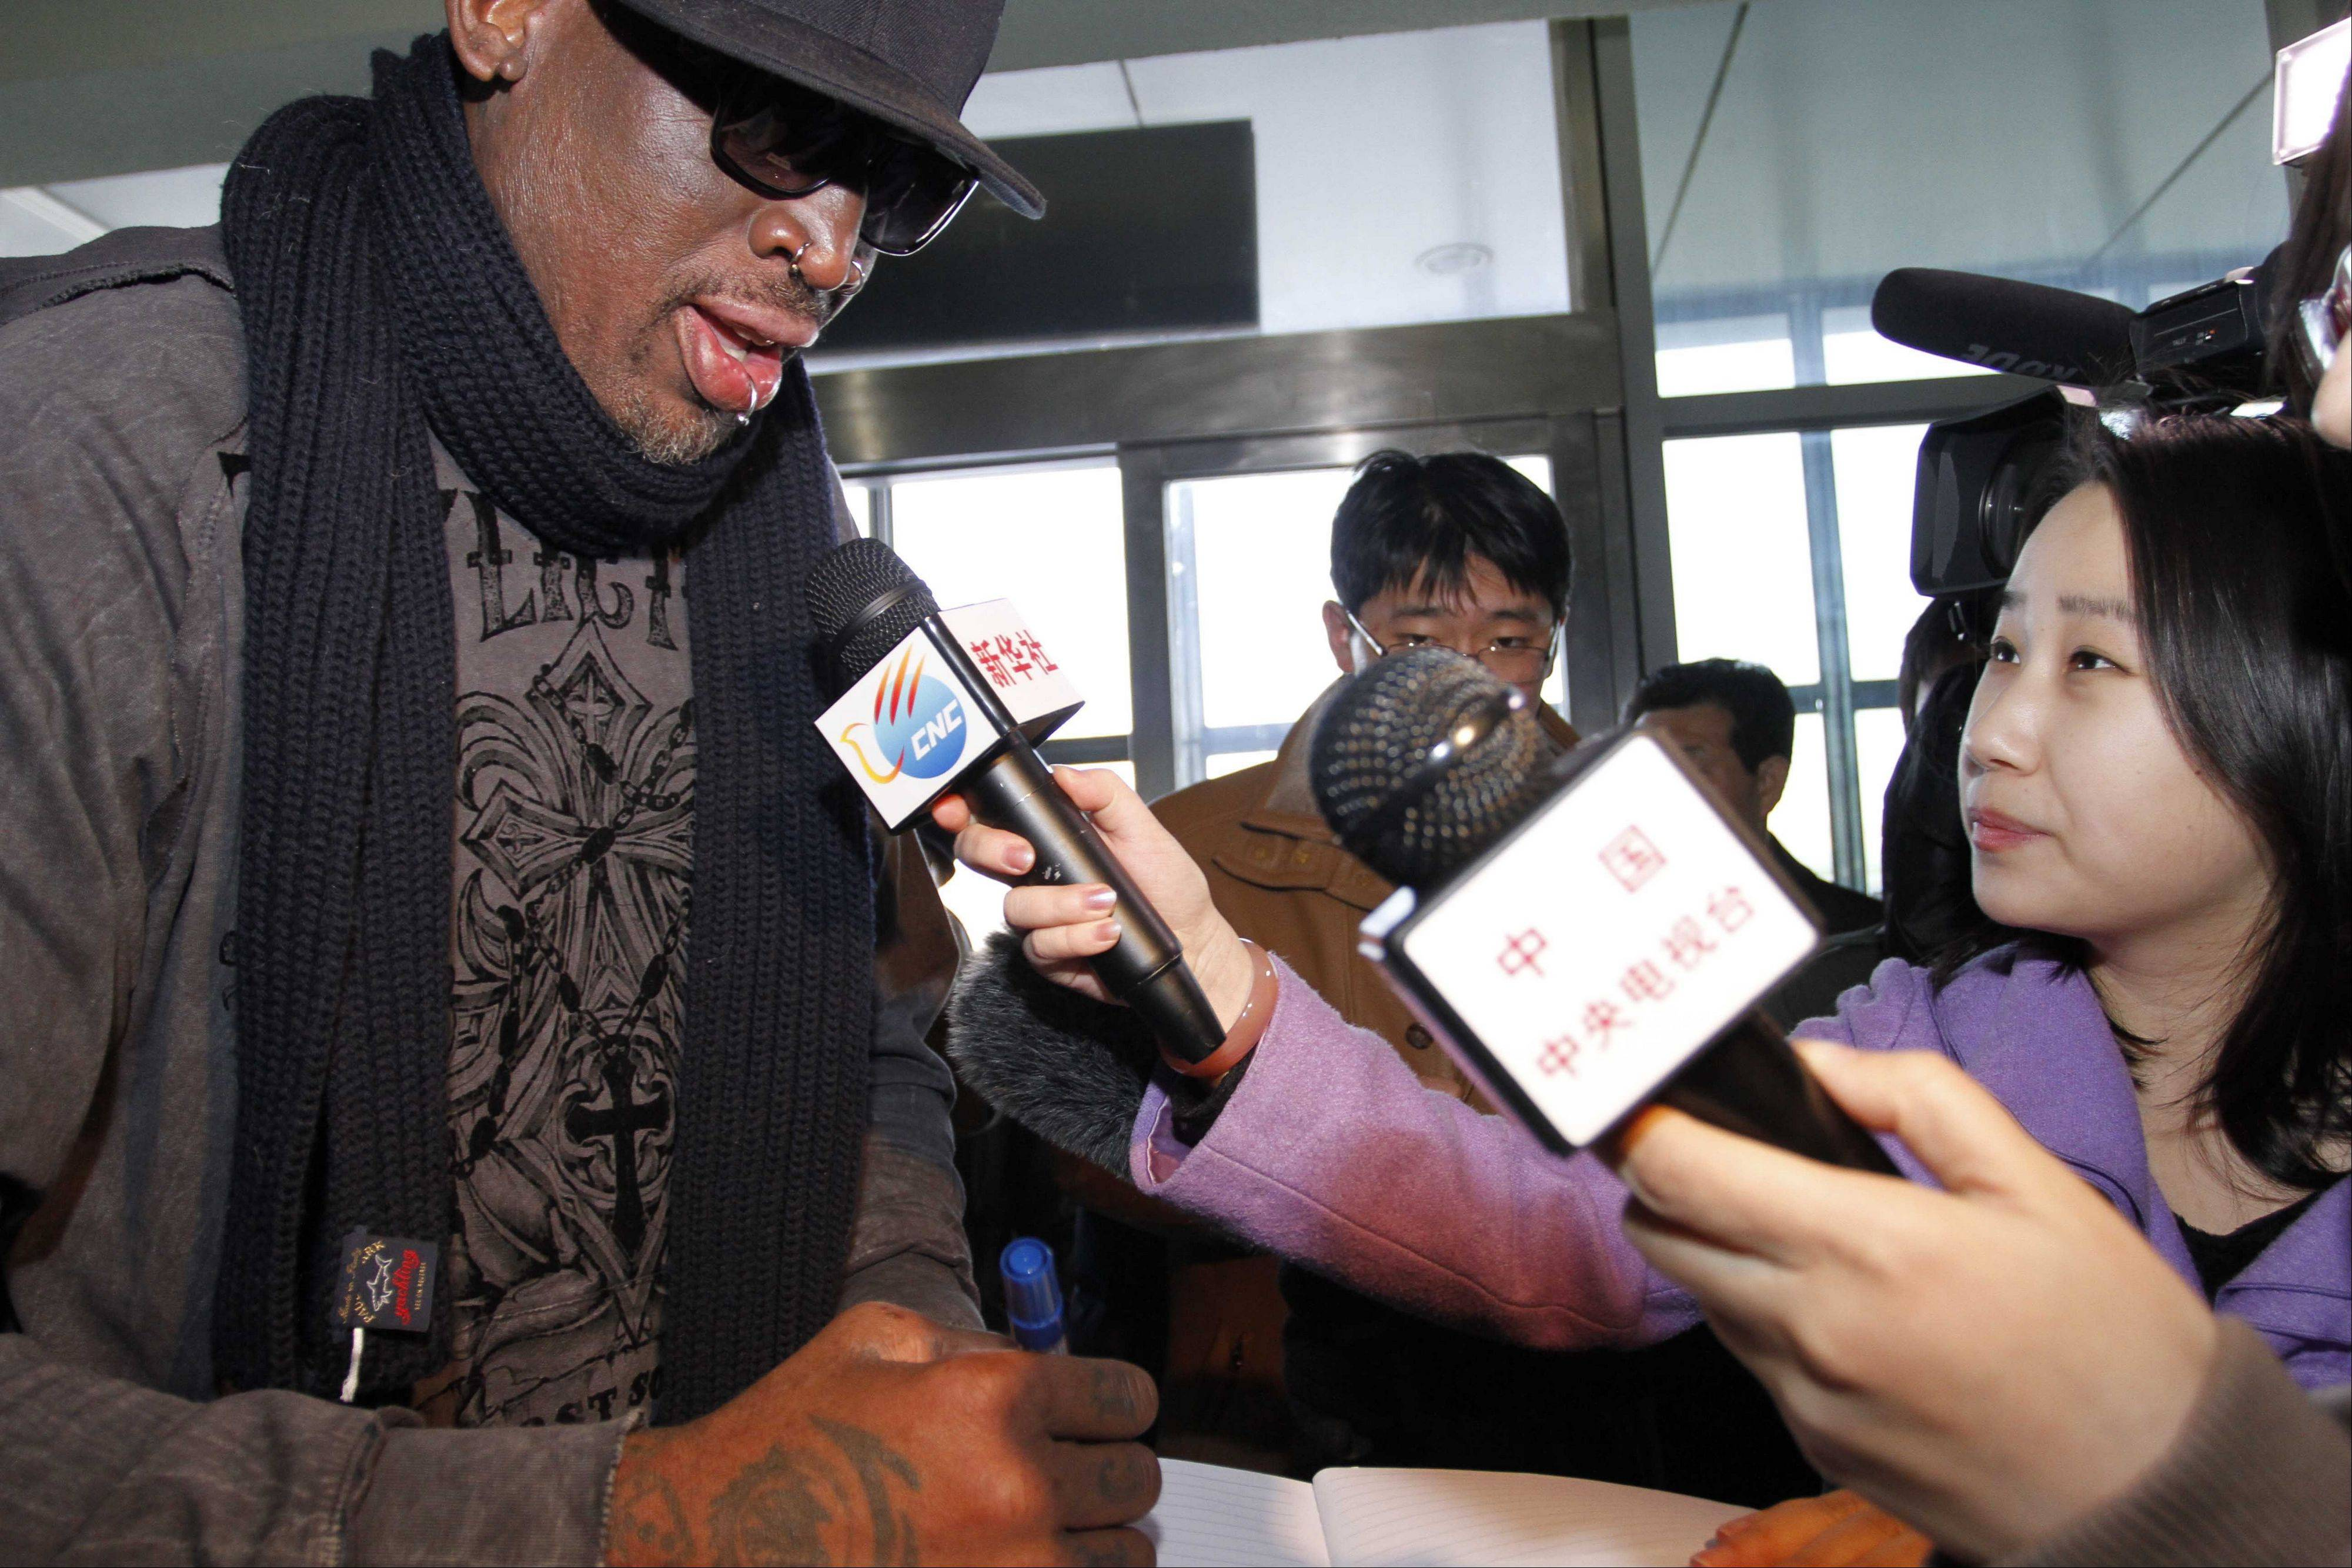 Former NBA star Dennis Rodman speaks to the media Friday at the airport in Pyongyang, before he leaves North Korea. Rodman hung out with North Korea's Kim Jong Un during his improbable journey to Pyongyang, watching the Harlem Globetrotters with the leader and later drinking and dining on sushi with him.